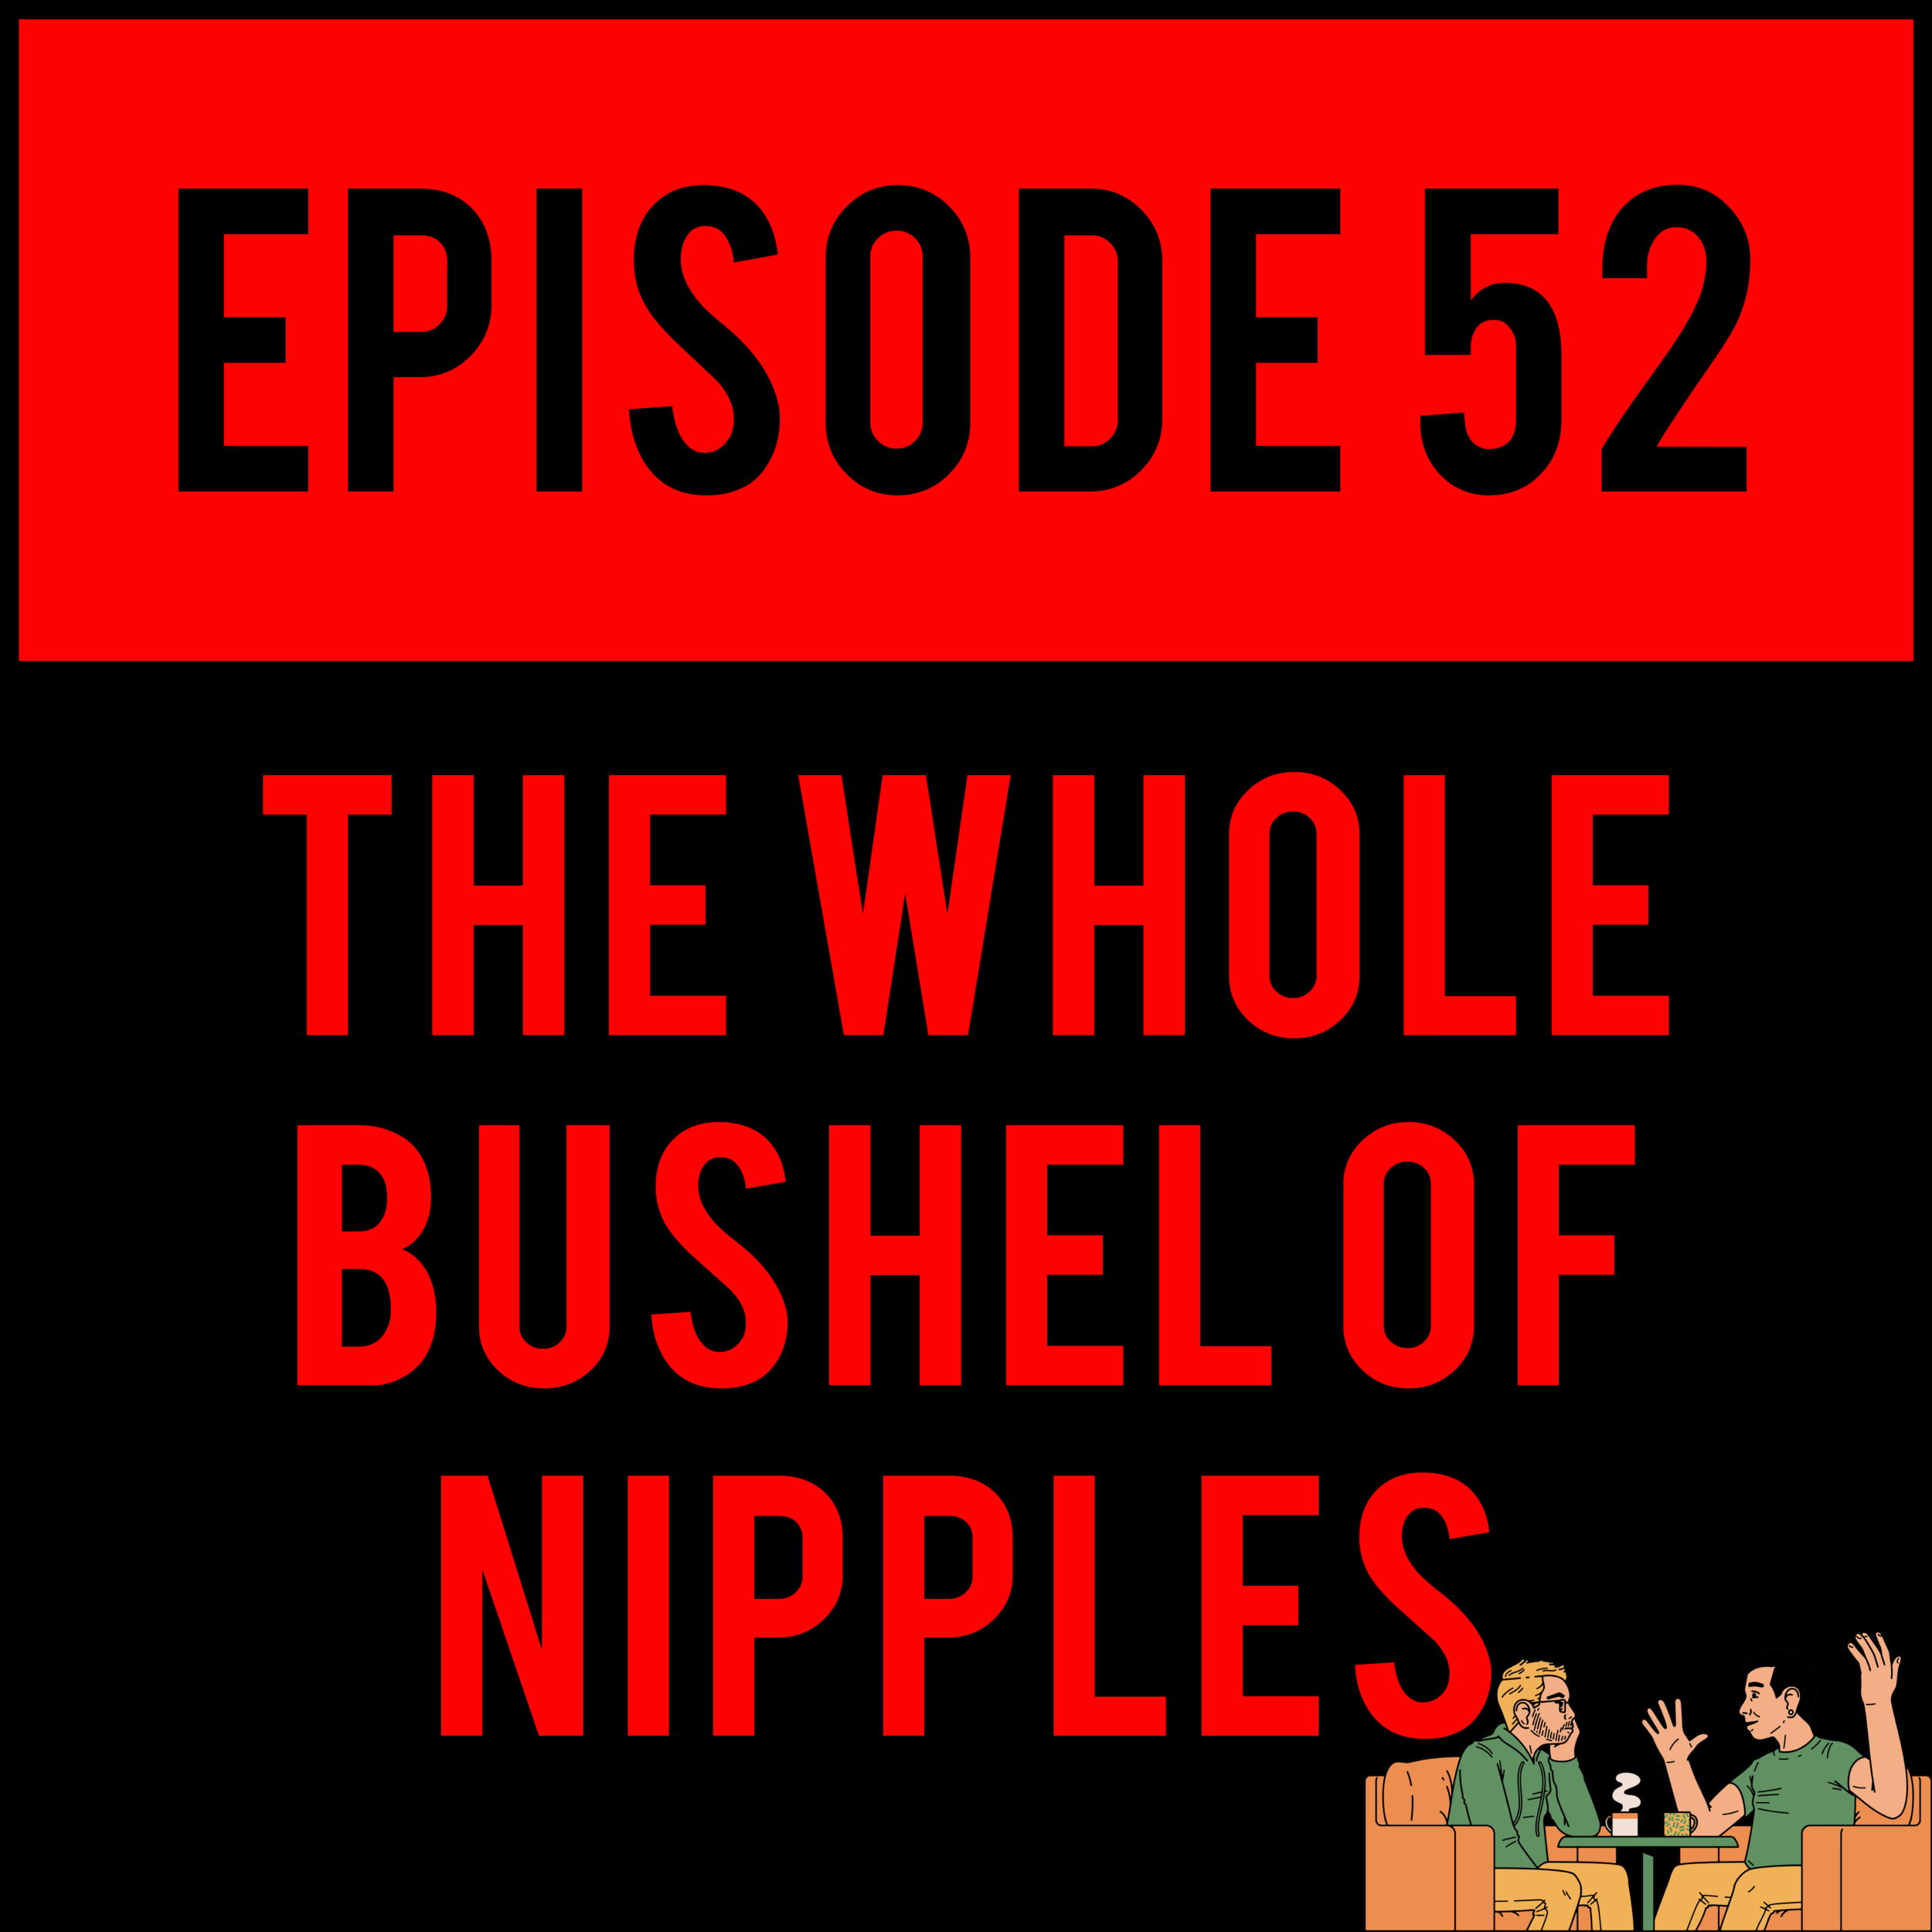 EPISODE 52 - We made it. Alex is basically naked the entire time and Justyn's interest is basically amputated at the neck, because they both procrastinated reaching out to guests, on the special one year anniversary episode THE WHOLE BUSHEL OF NIPPLES - EPISODE 52.Get ready another year of THE SAME SHIT.